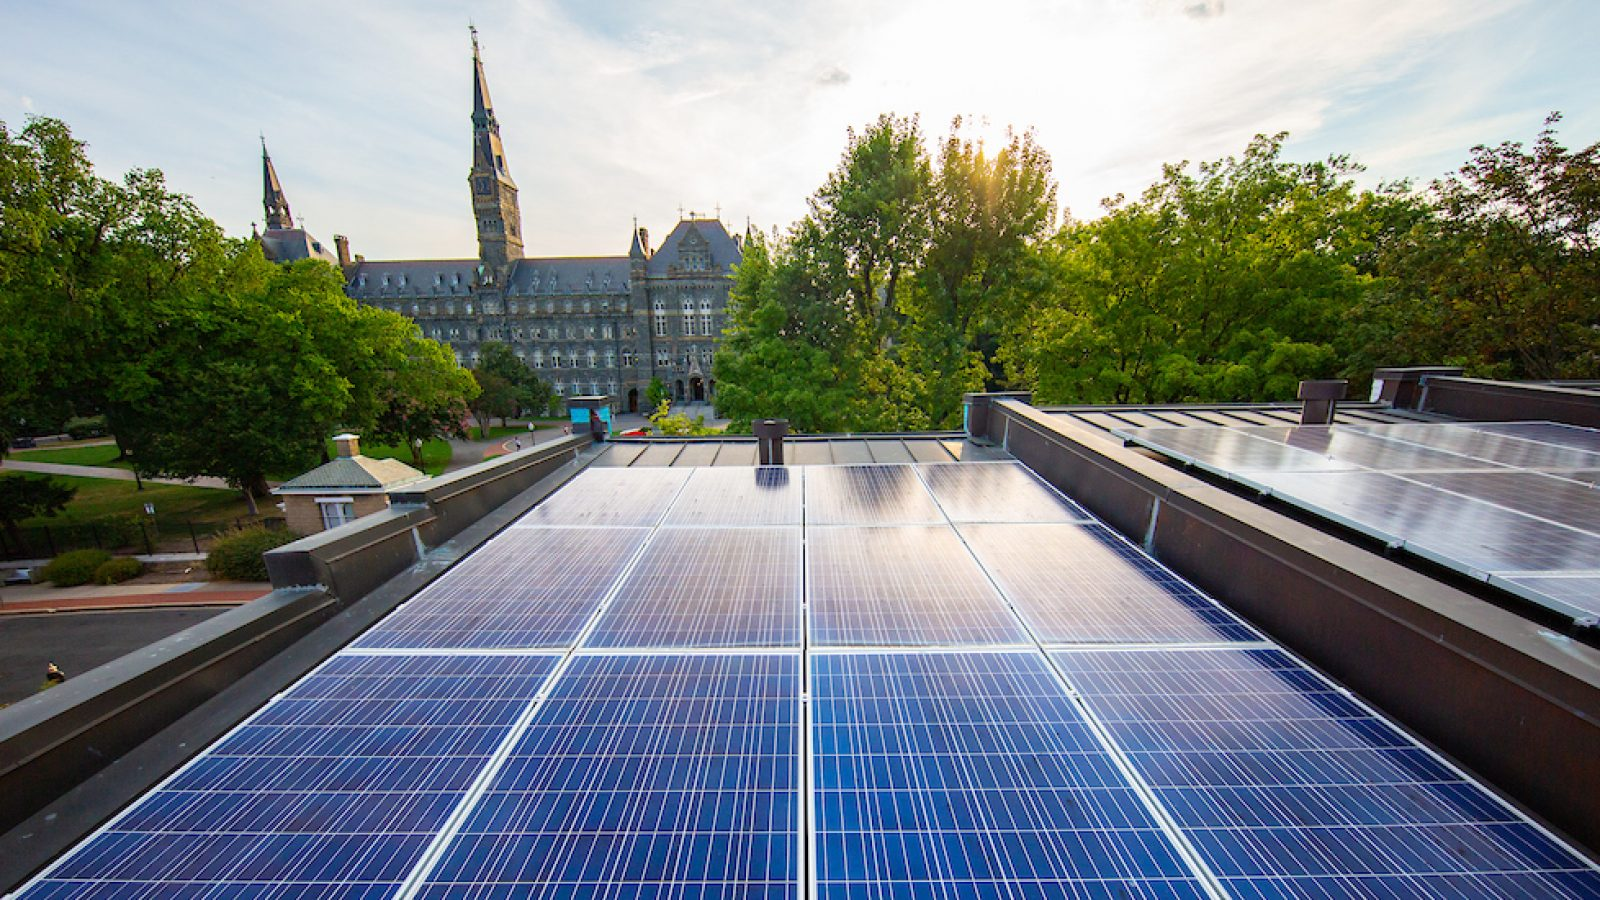 Solar panels on Georgetown townhouse rooftops with Healy Hall in the background